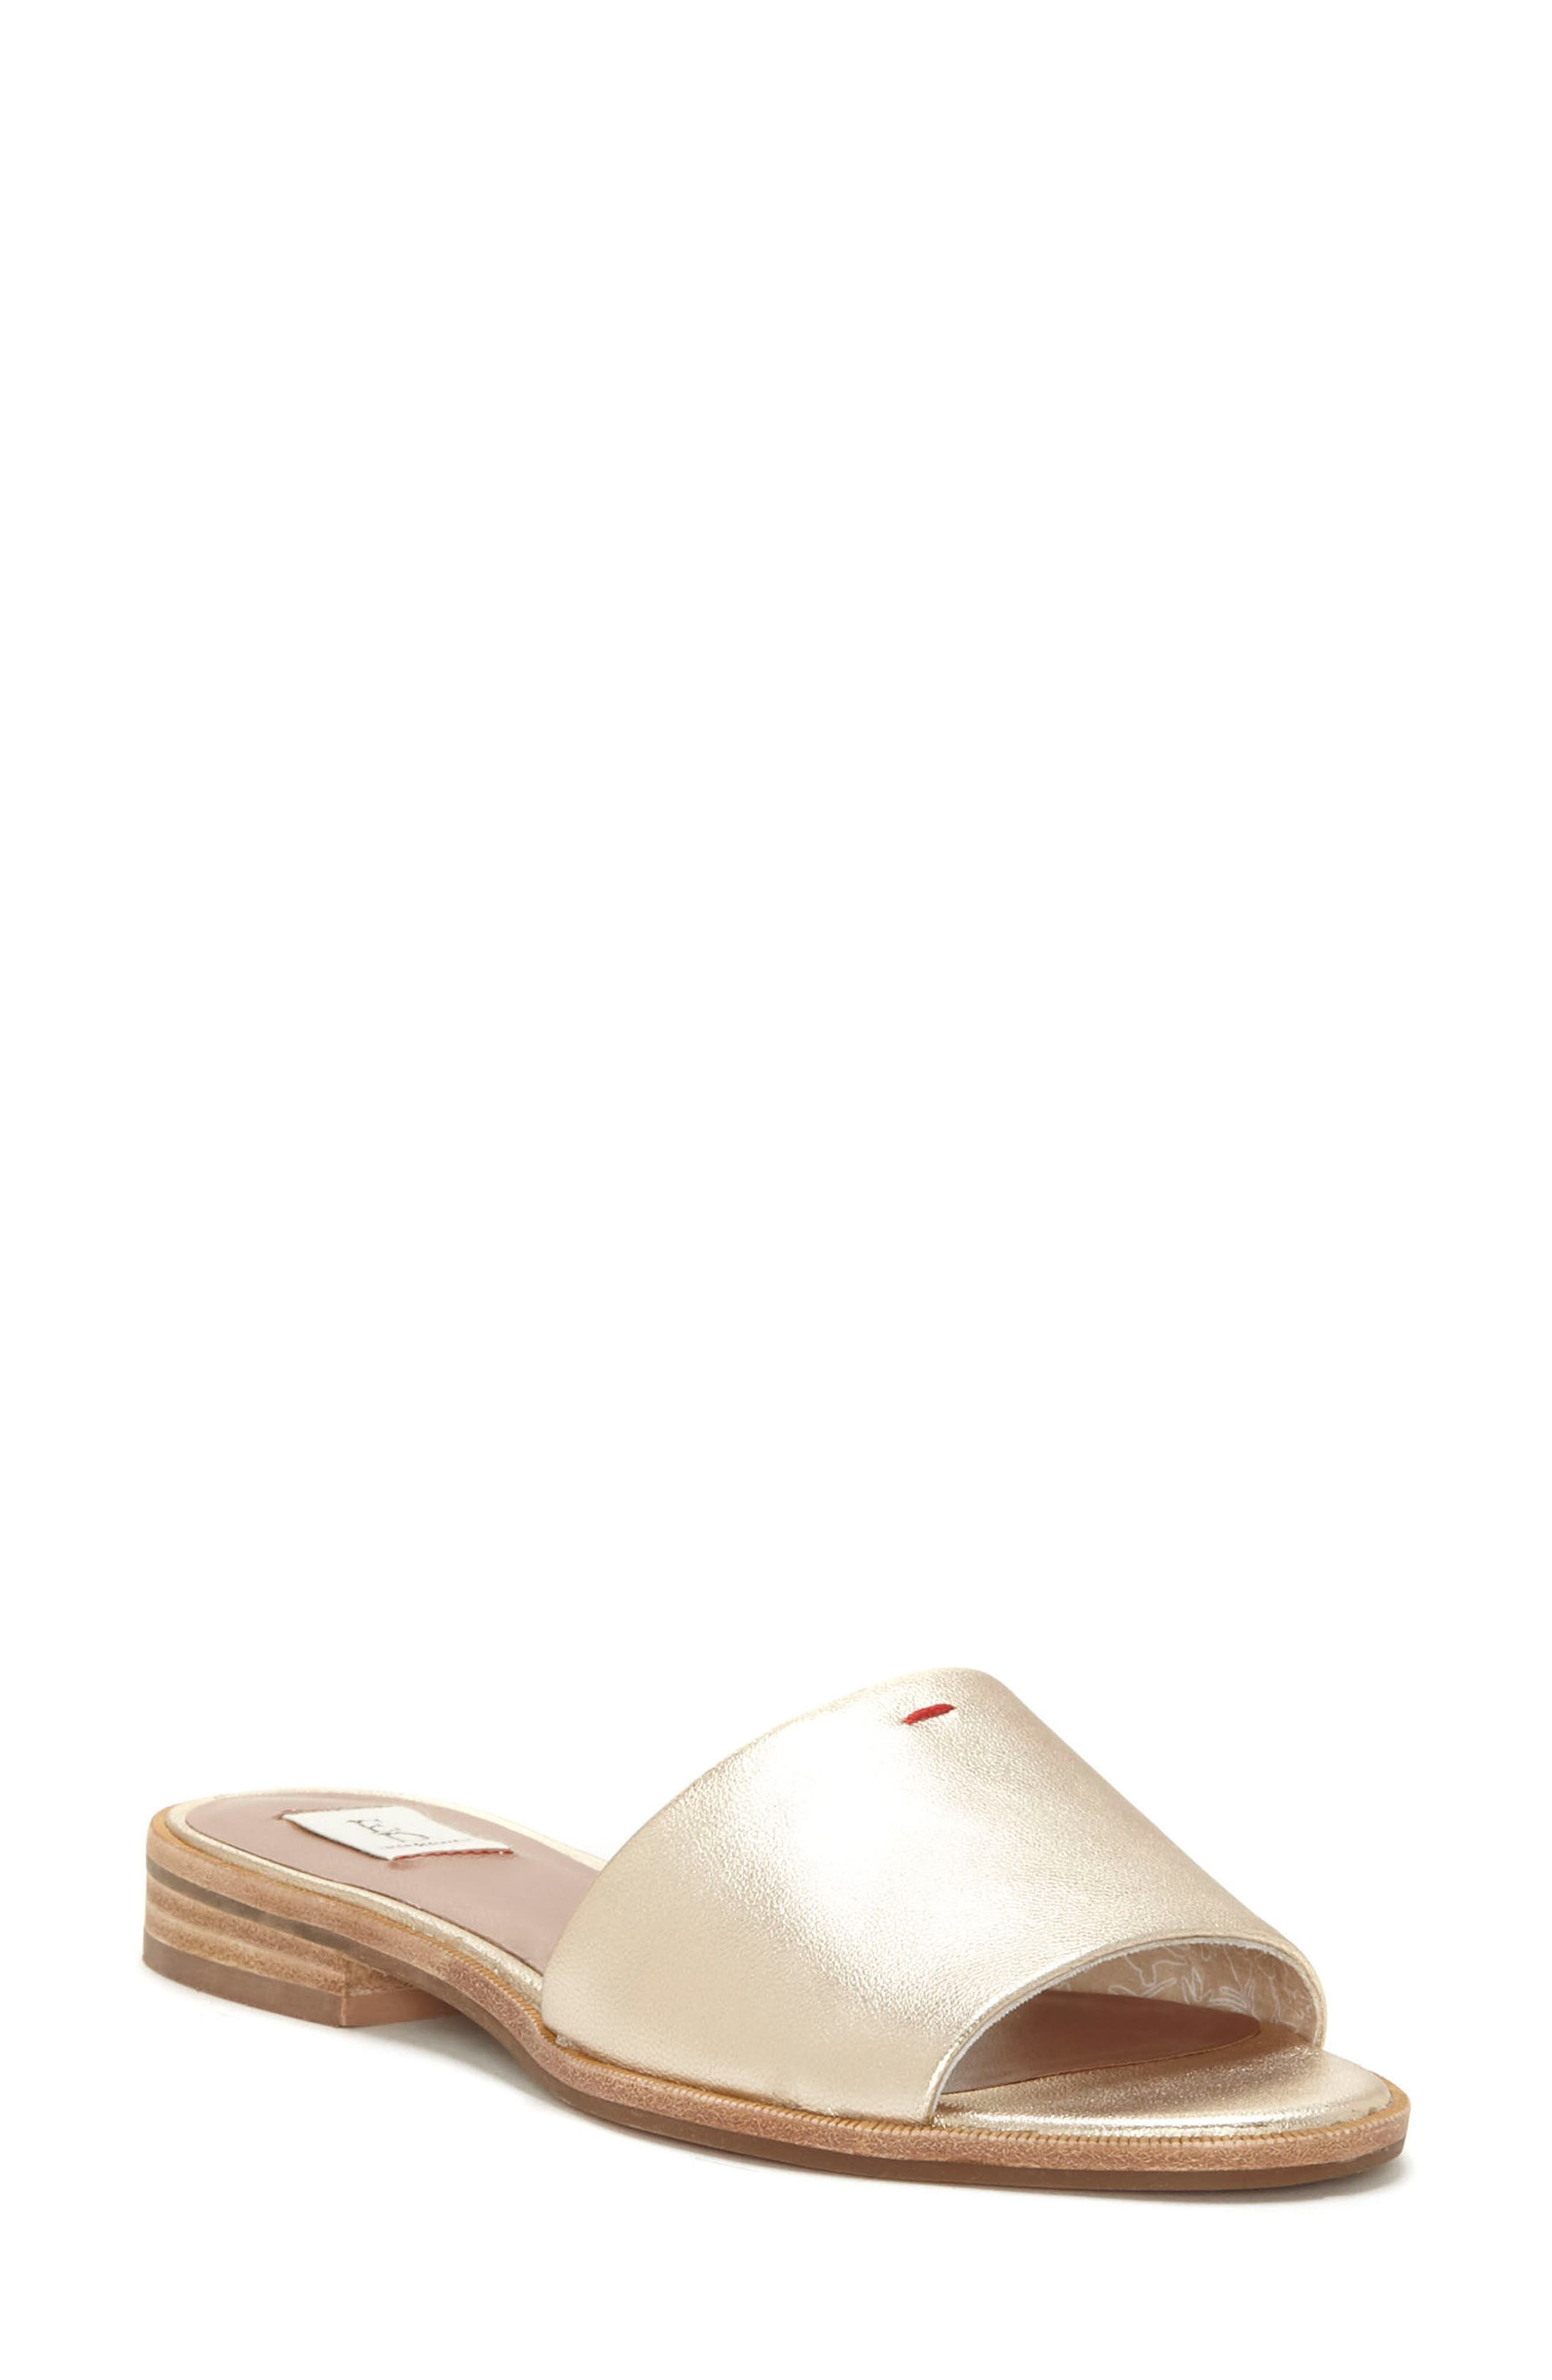 Solay Sandal,                             Main thumbnail 1, color,                             Prosecco Leather